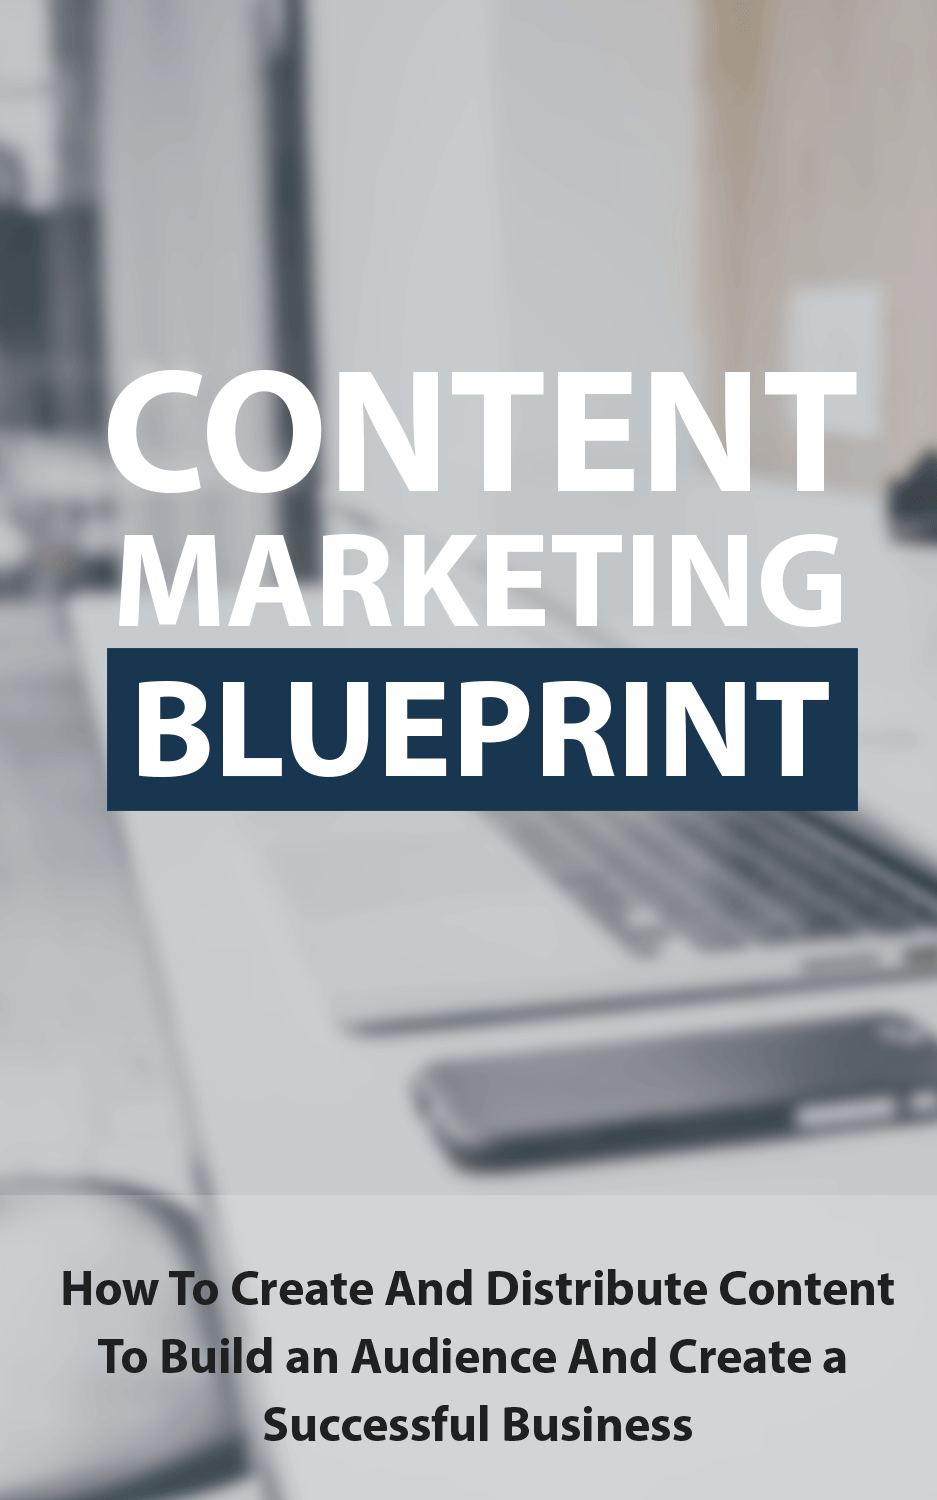 Content Marketing Blueprints (How To Create And Distribute Content To Build An Audience And Create A Successful Business) Ebook's Ebook Image